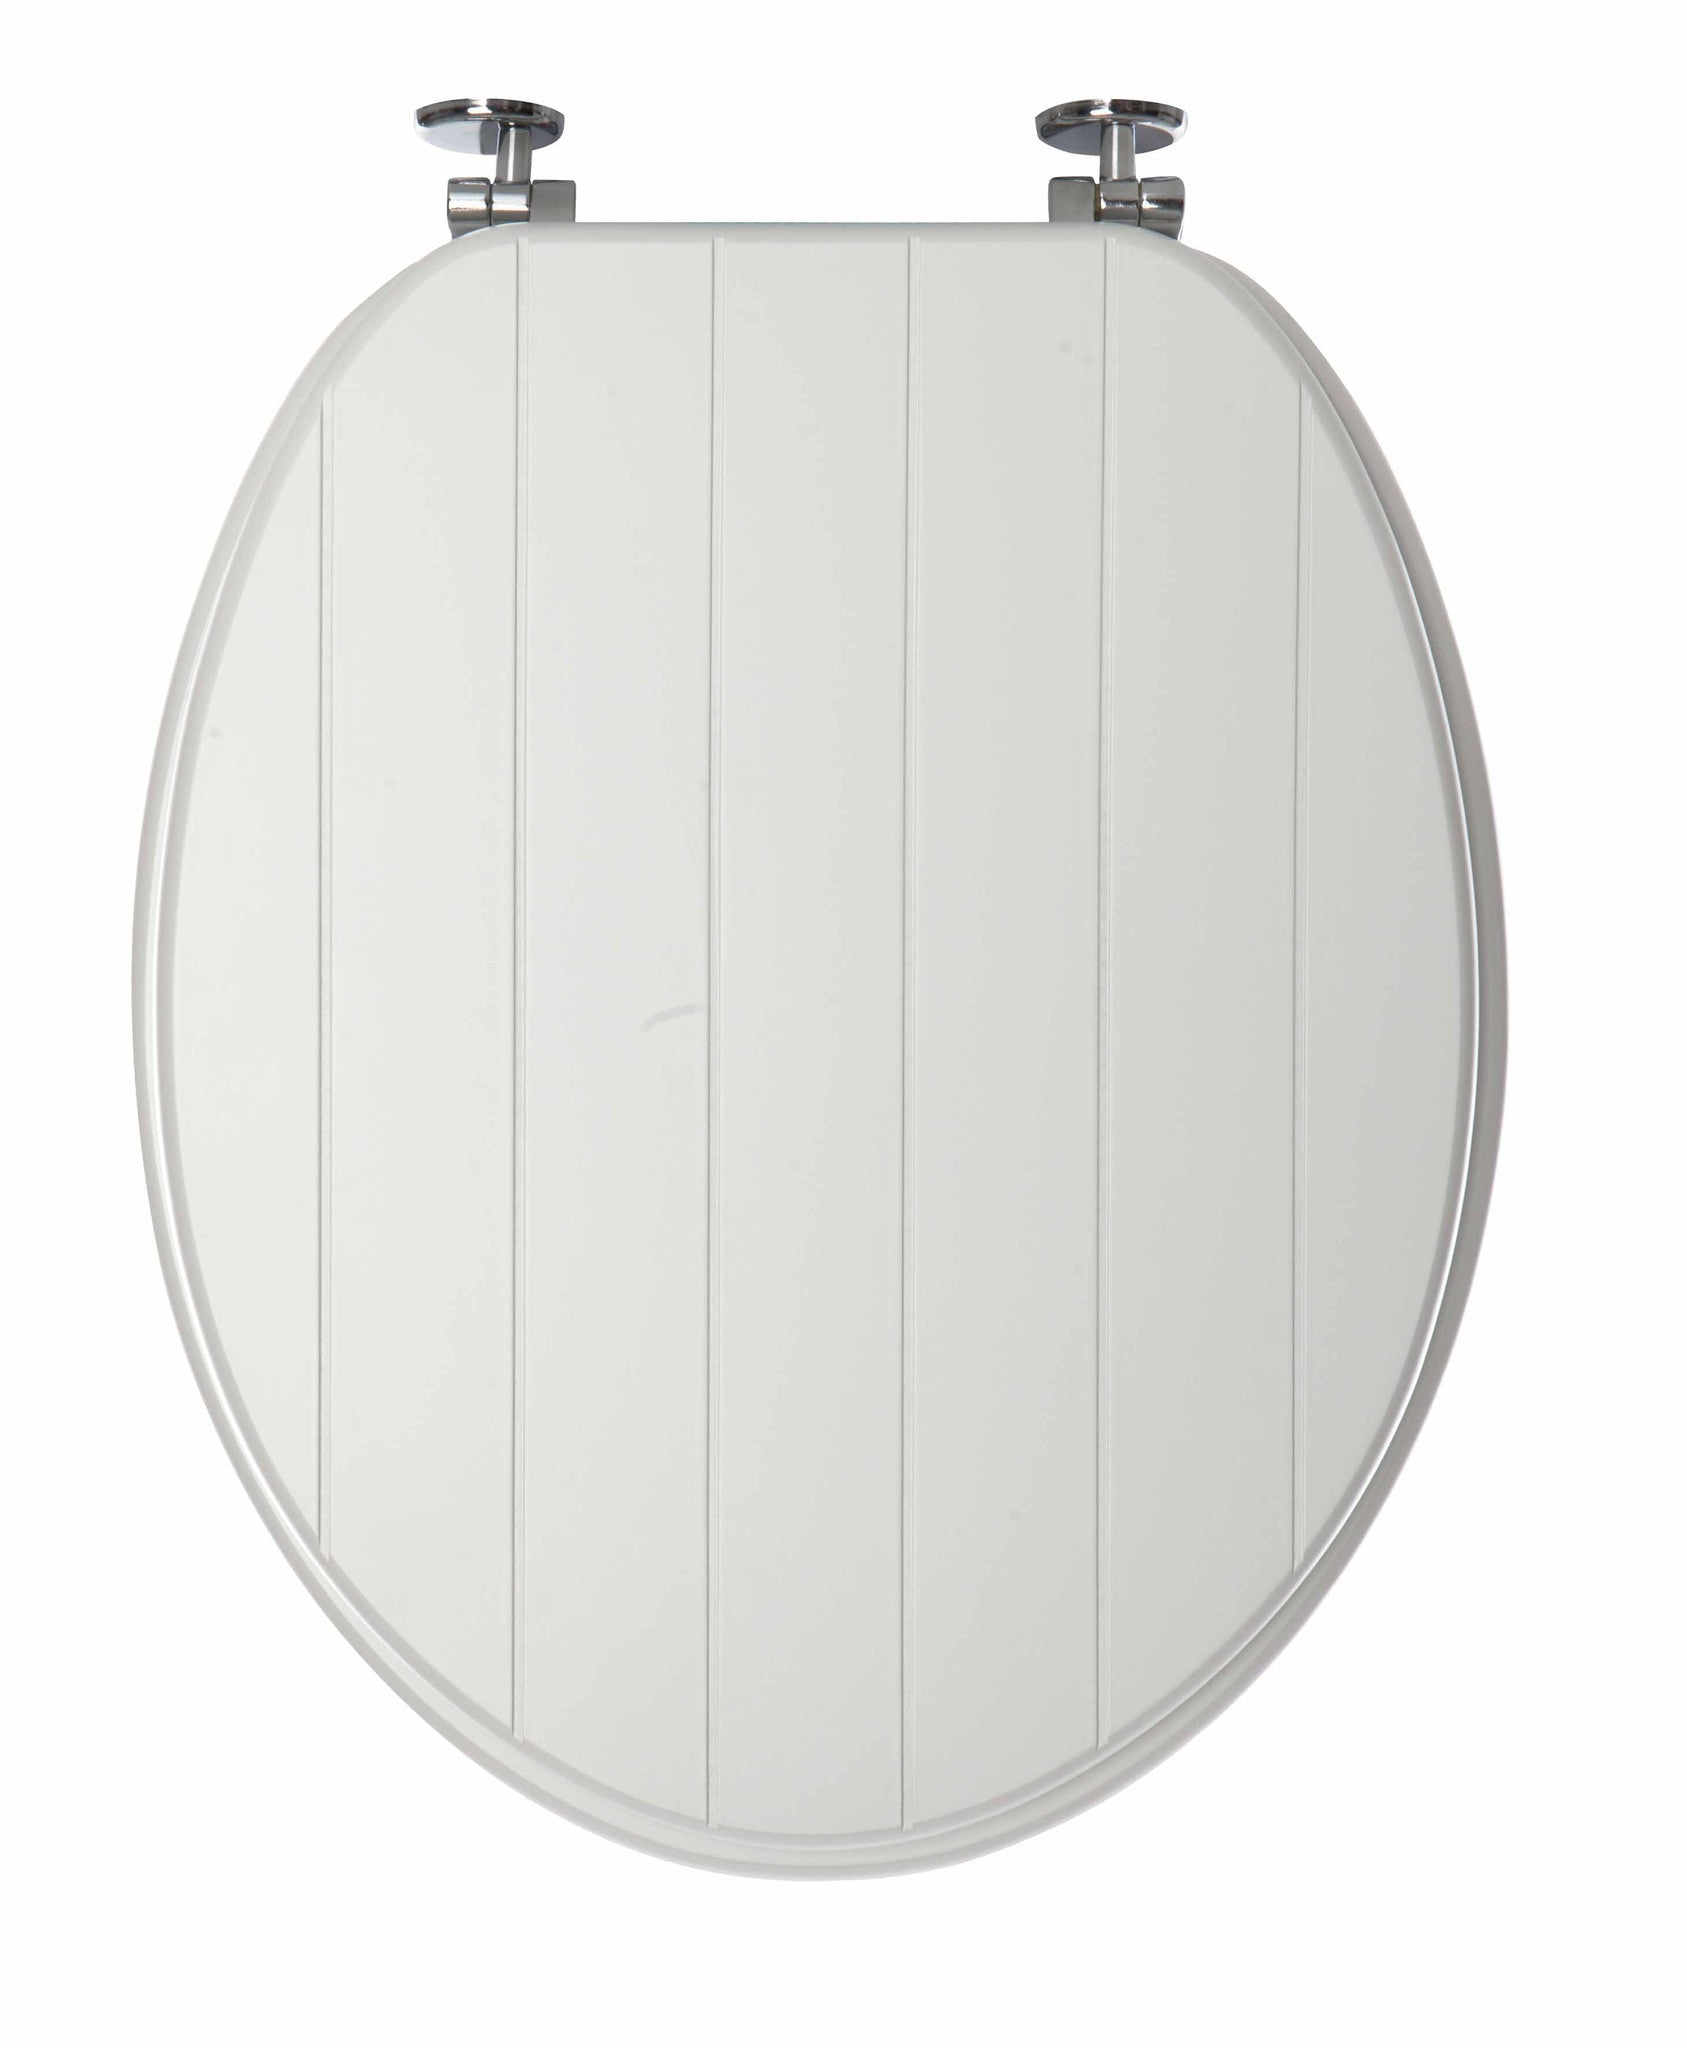 Sabichi Tongue and Groove Toilet Seat- 168436 - Homely Nigeria